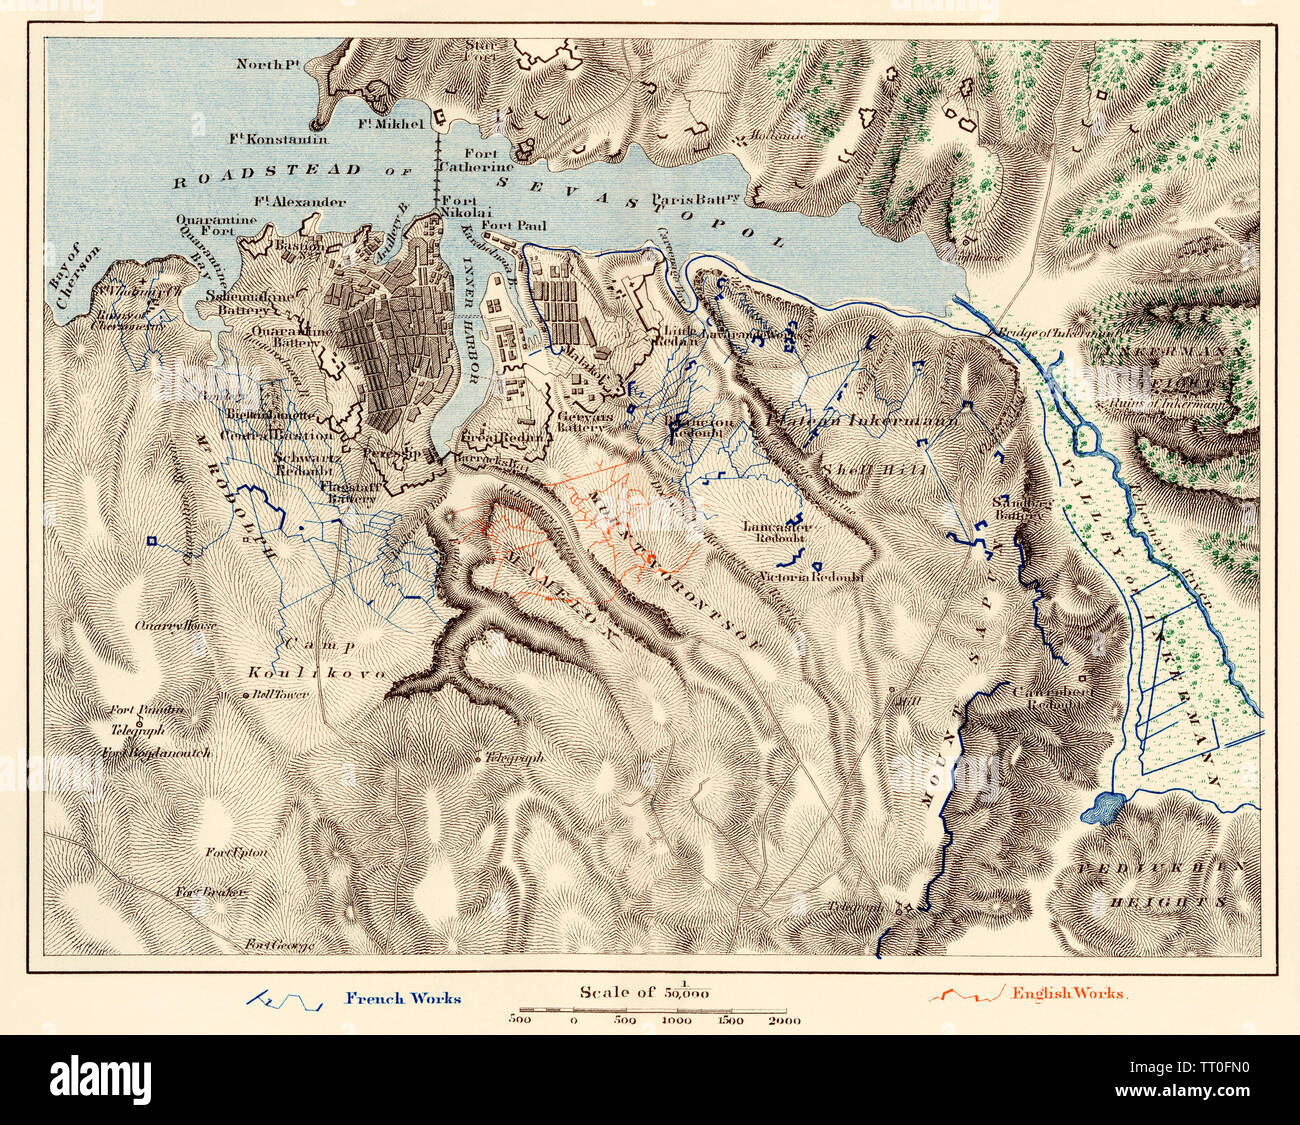 Map of Sevastopol, Crimean War, 1854-1855. Color lithograph - Stock Image